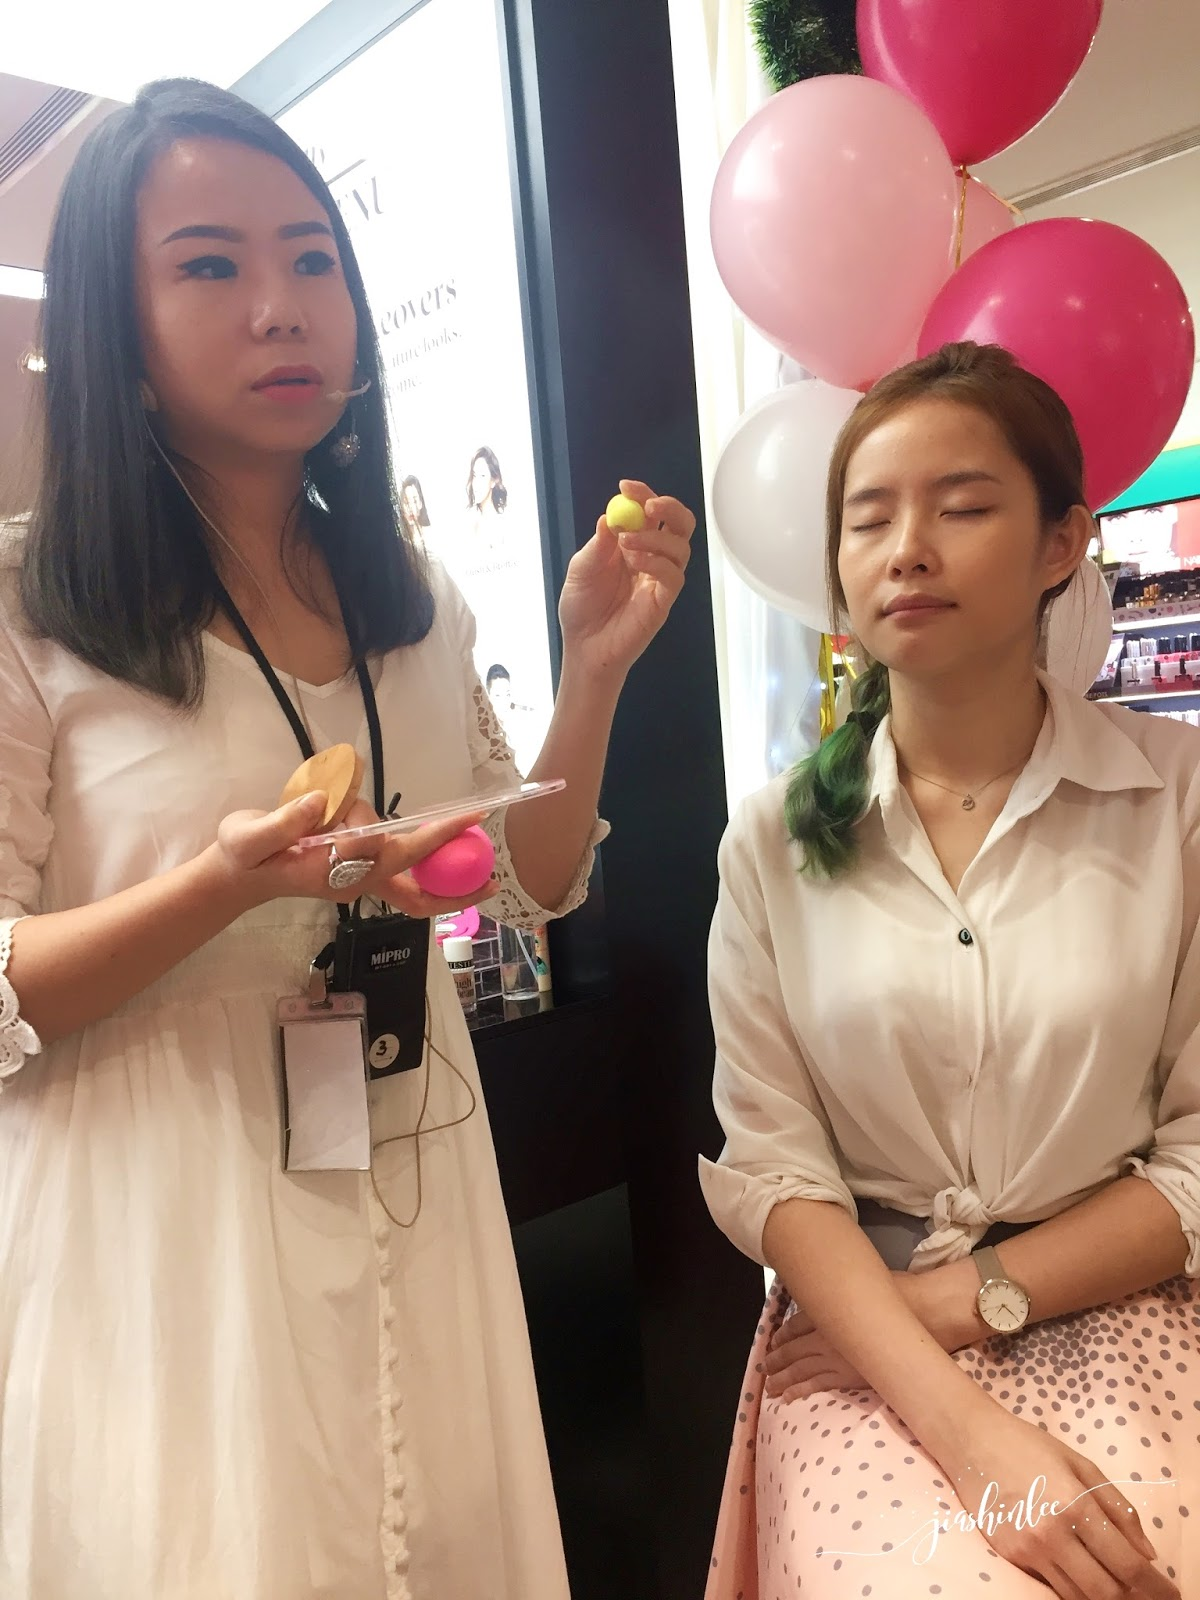 Porefect Complexion Workshop Organized By Beautyblender Malaysia Egg Drop Beauty Blender Contouring Sponge For I Cant Rave How Good This Iconic Pink Shaped Is Using It Just Gives Me That Flawless Finish Feel Like My Makeup On